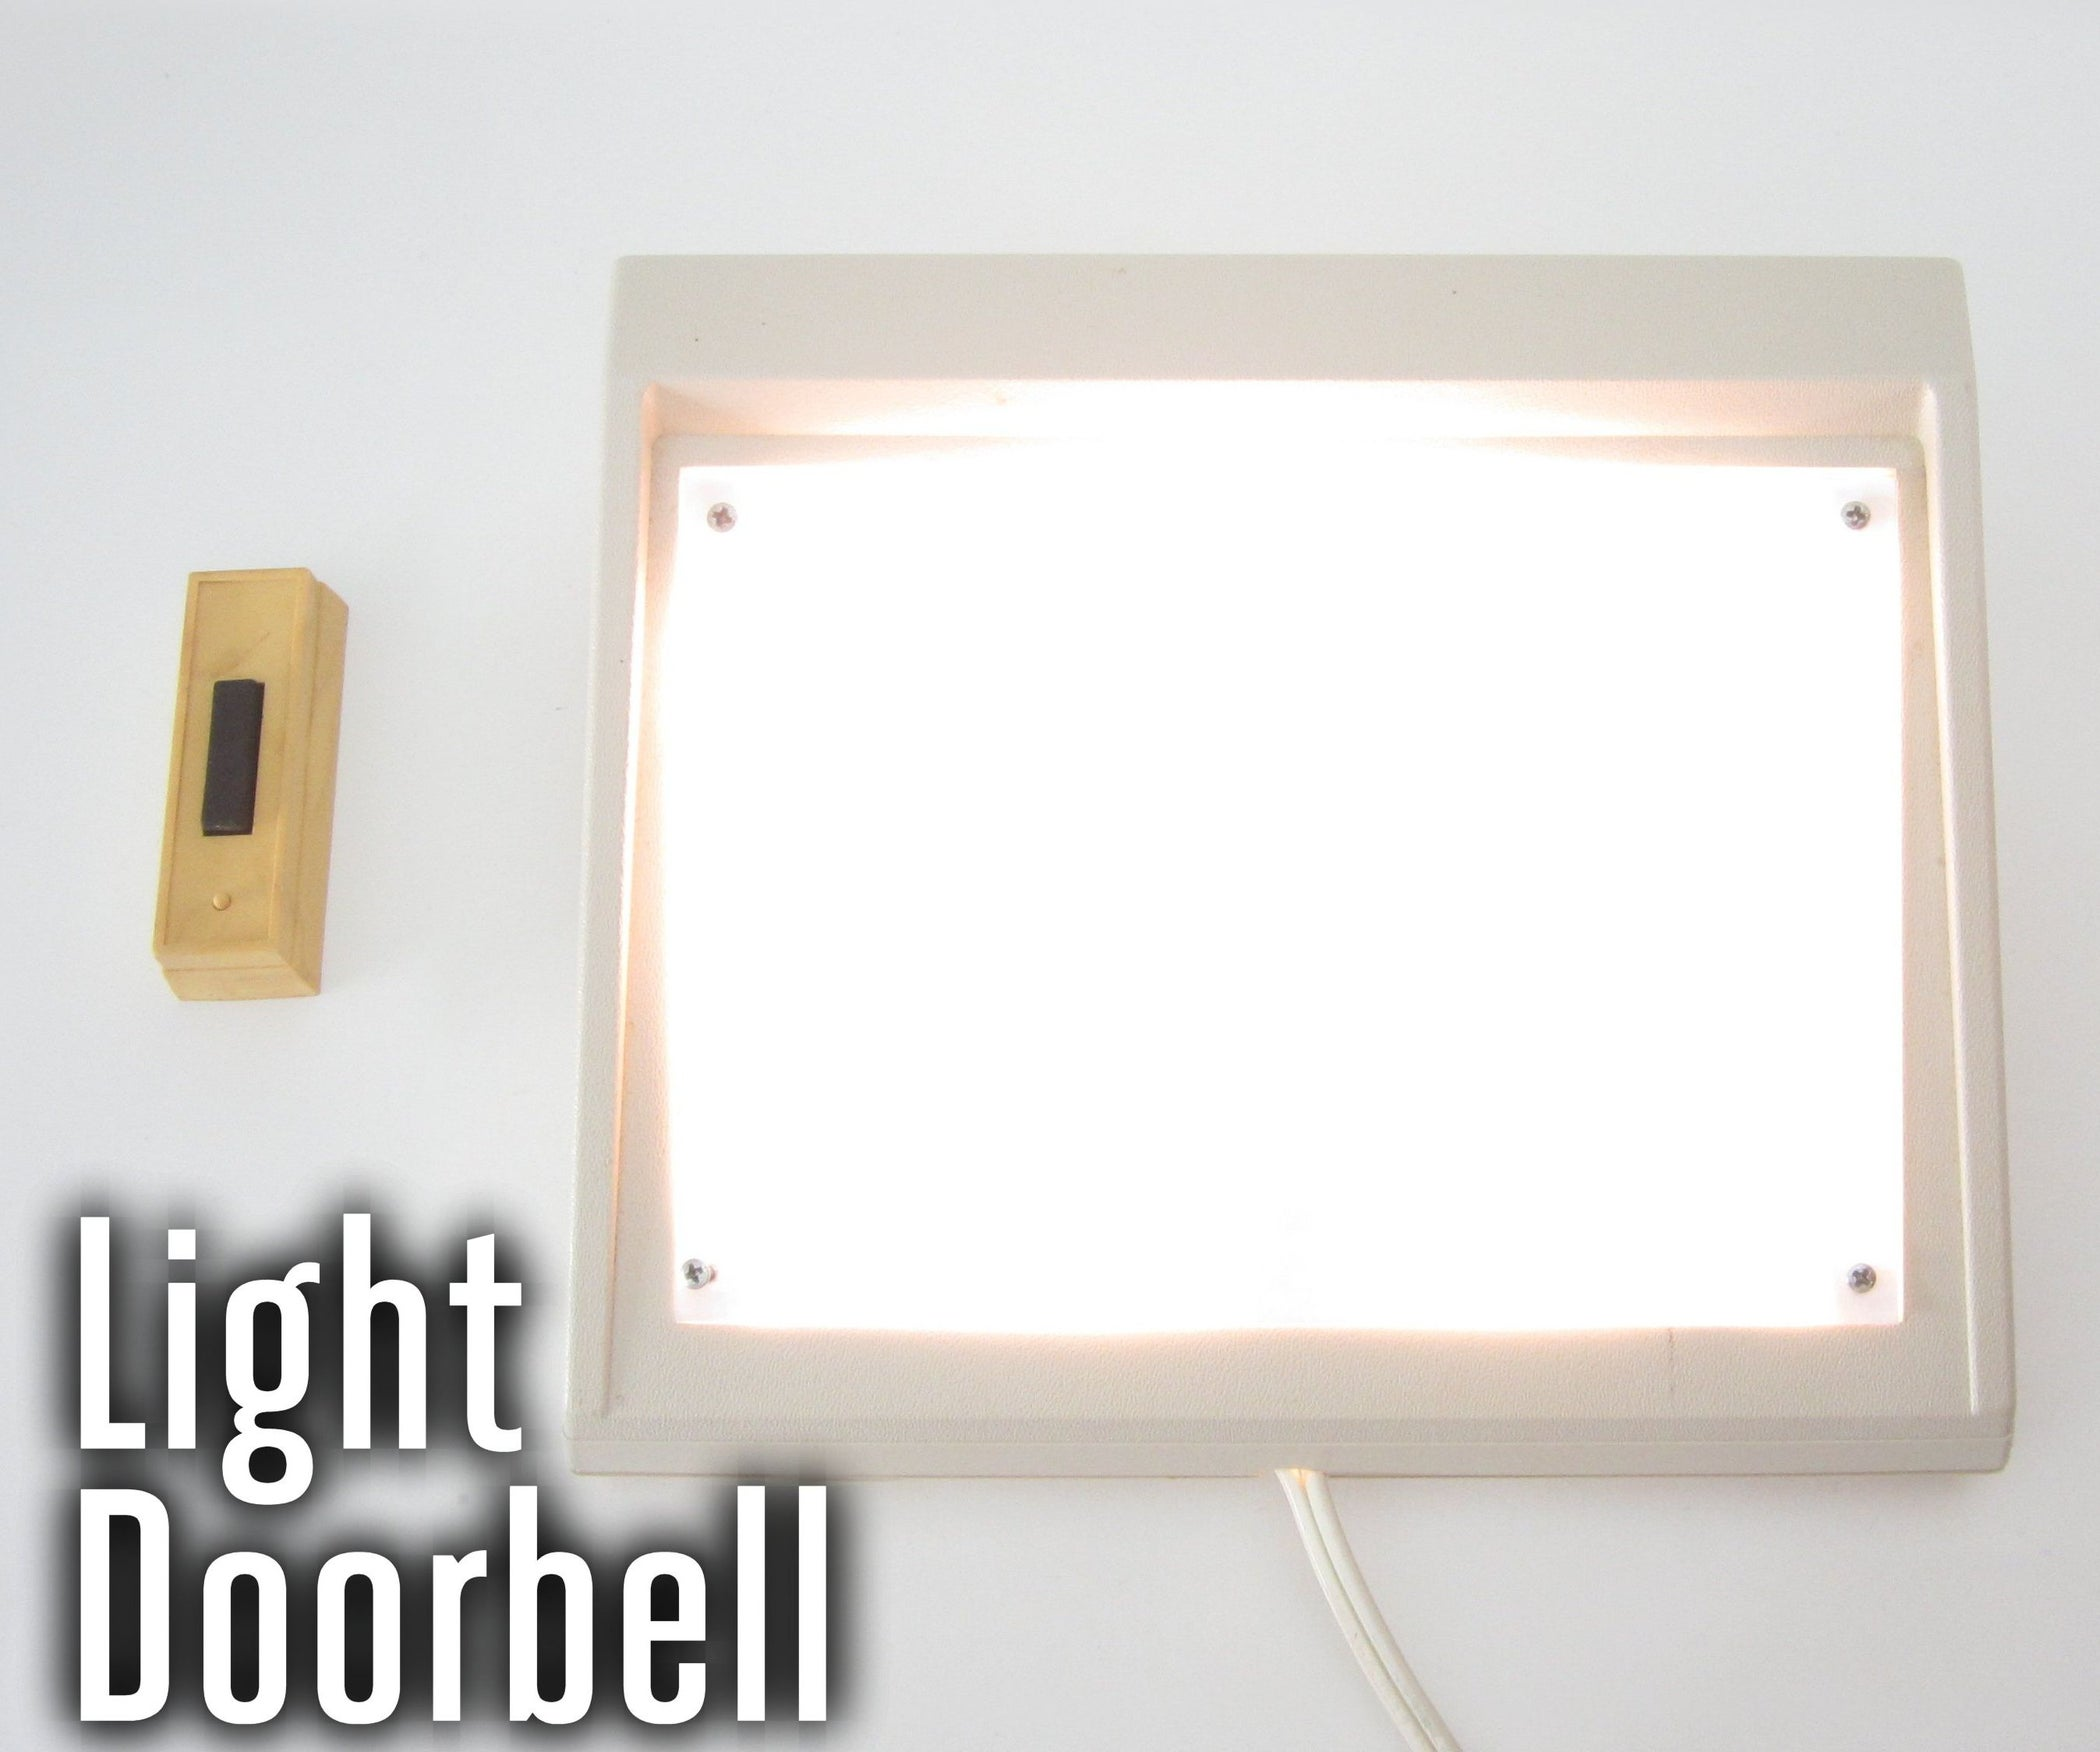 Doorbell That Turns On A Light 18 Steps With Pictures Activated Relay 555 Ic